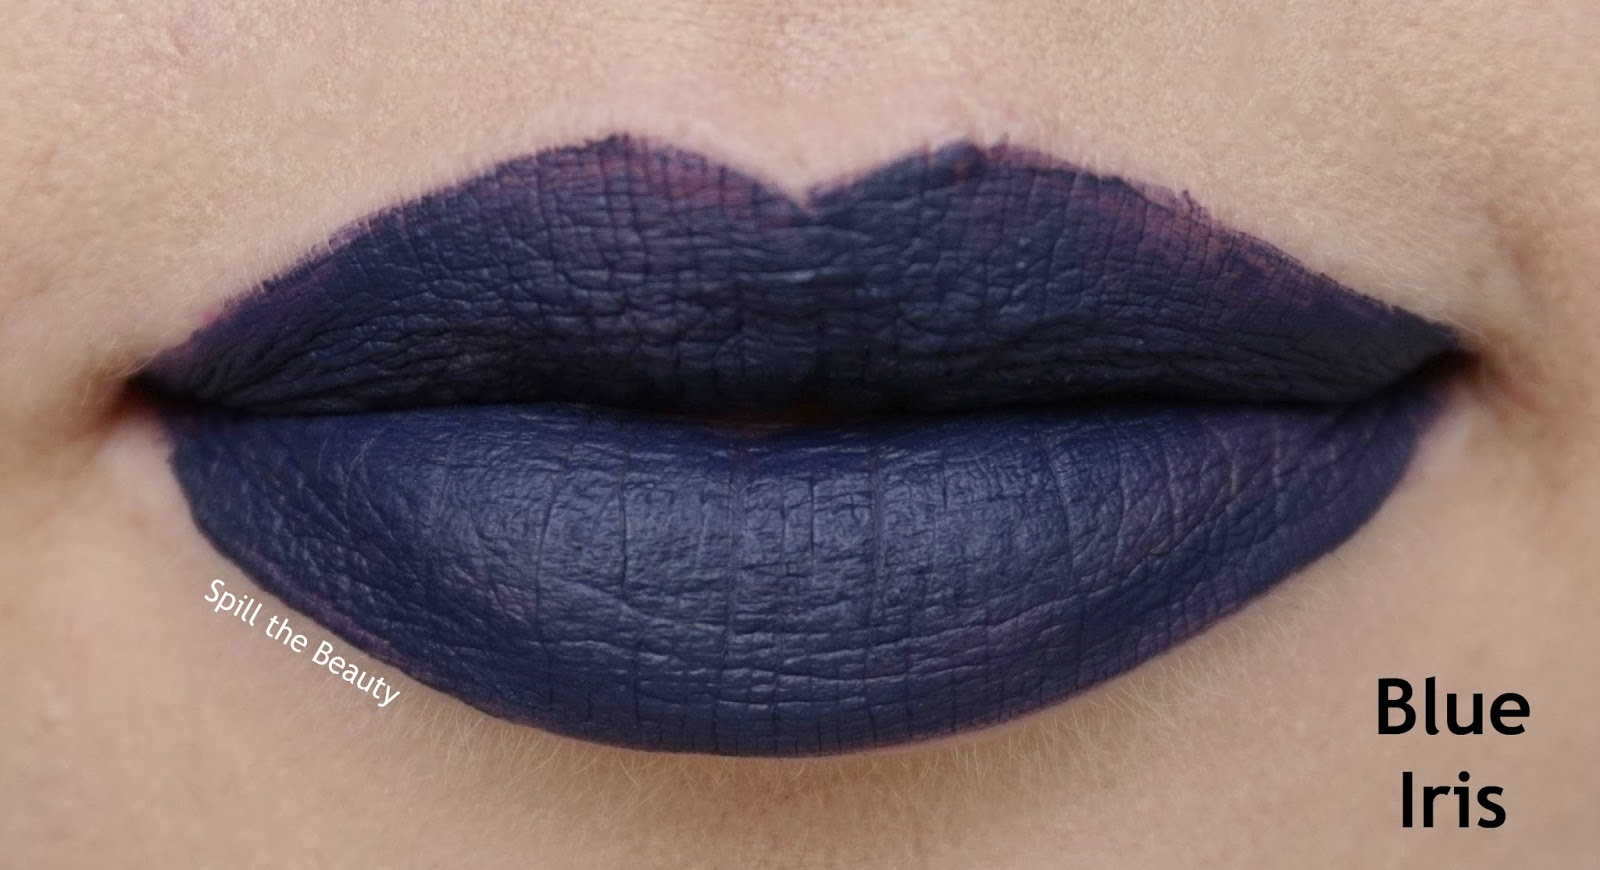 rimmel london stay matte liquid lip color review swatches 830 blue iris